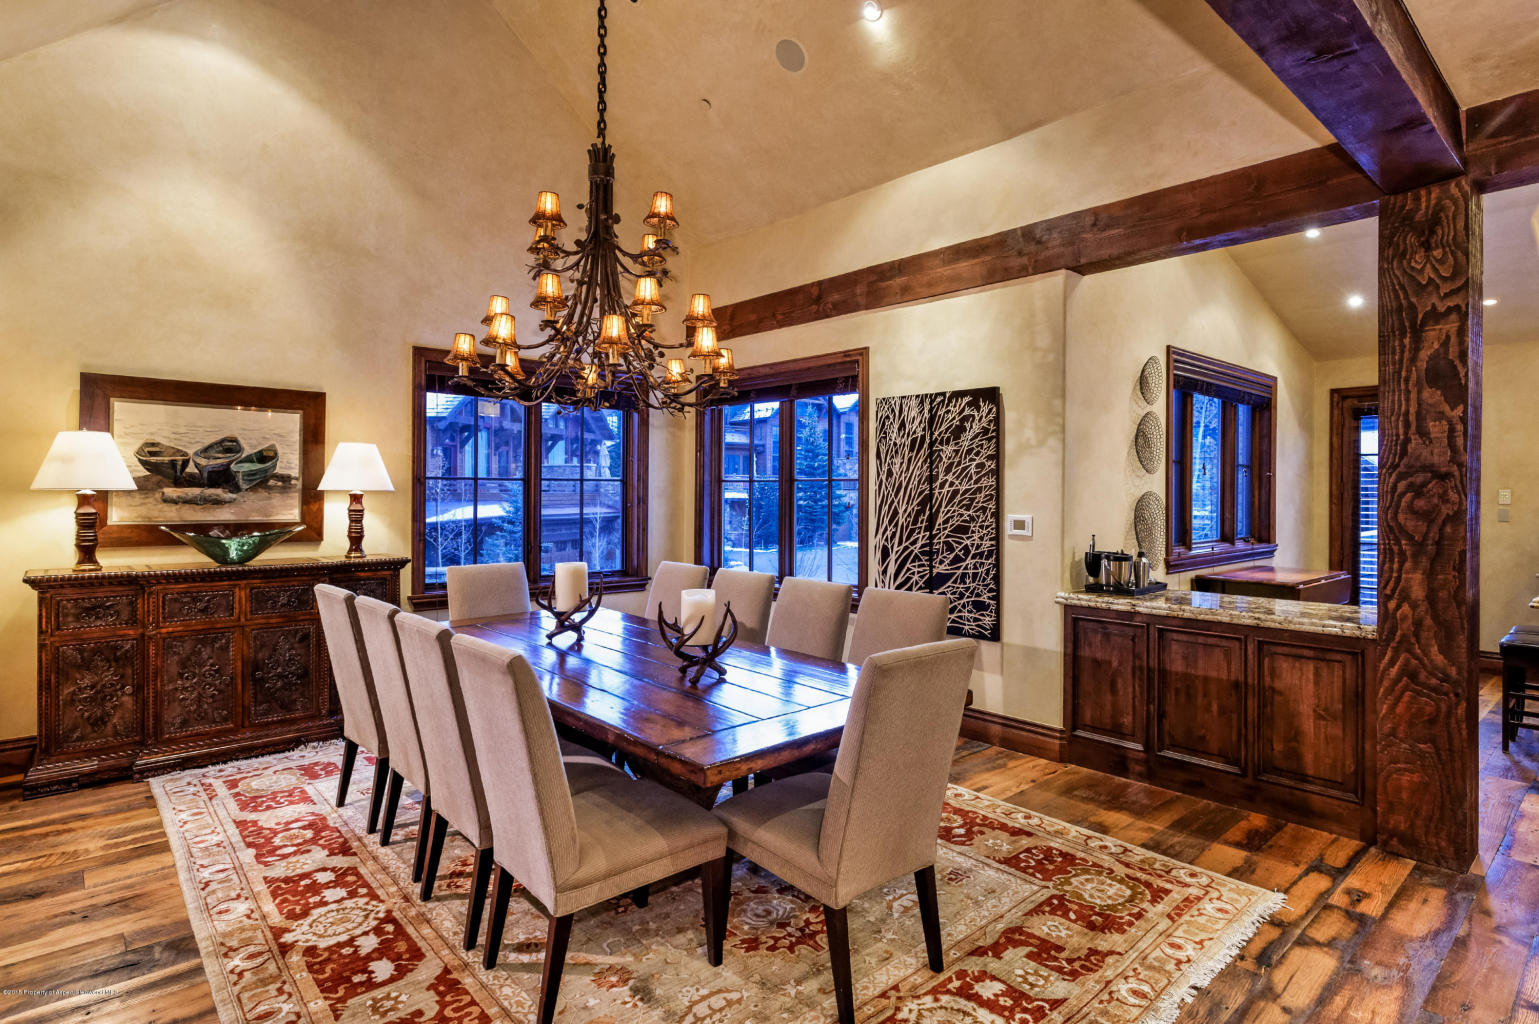 Entertain in the spacious dining area.